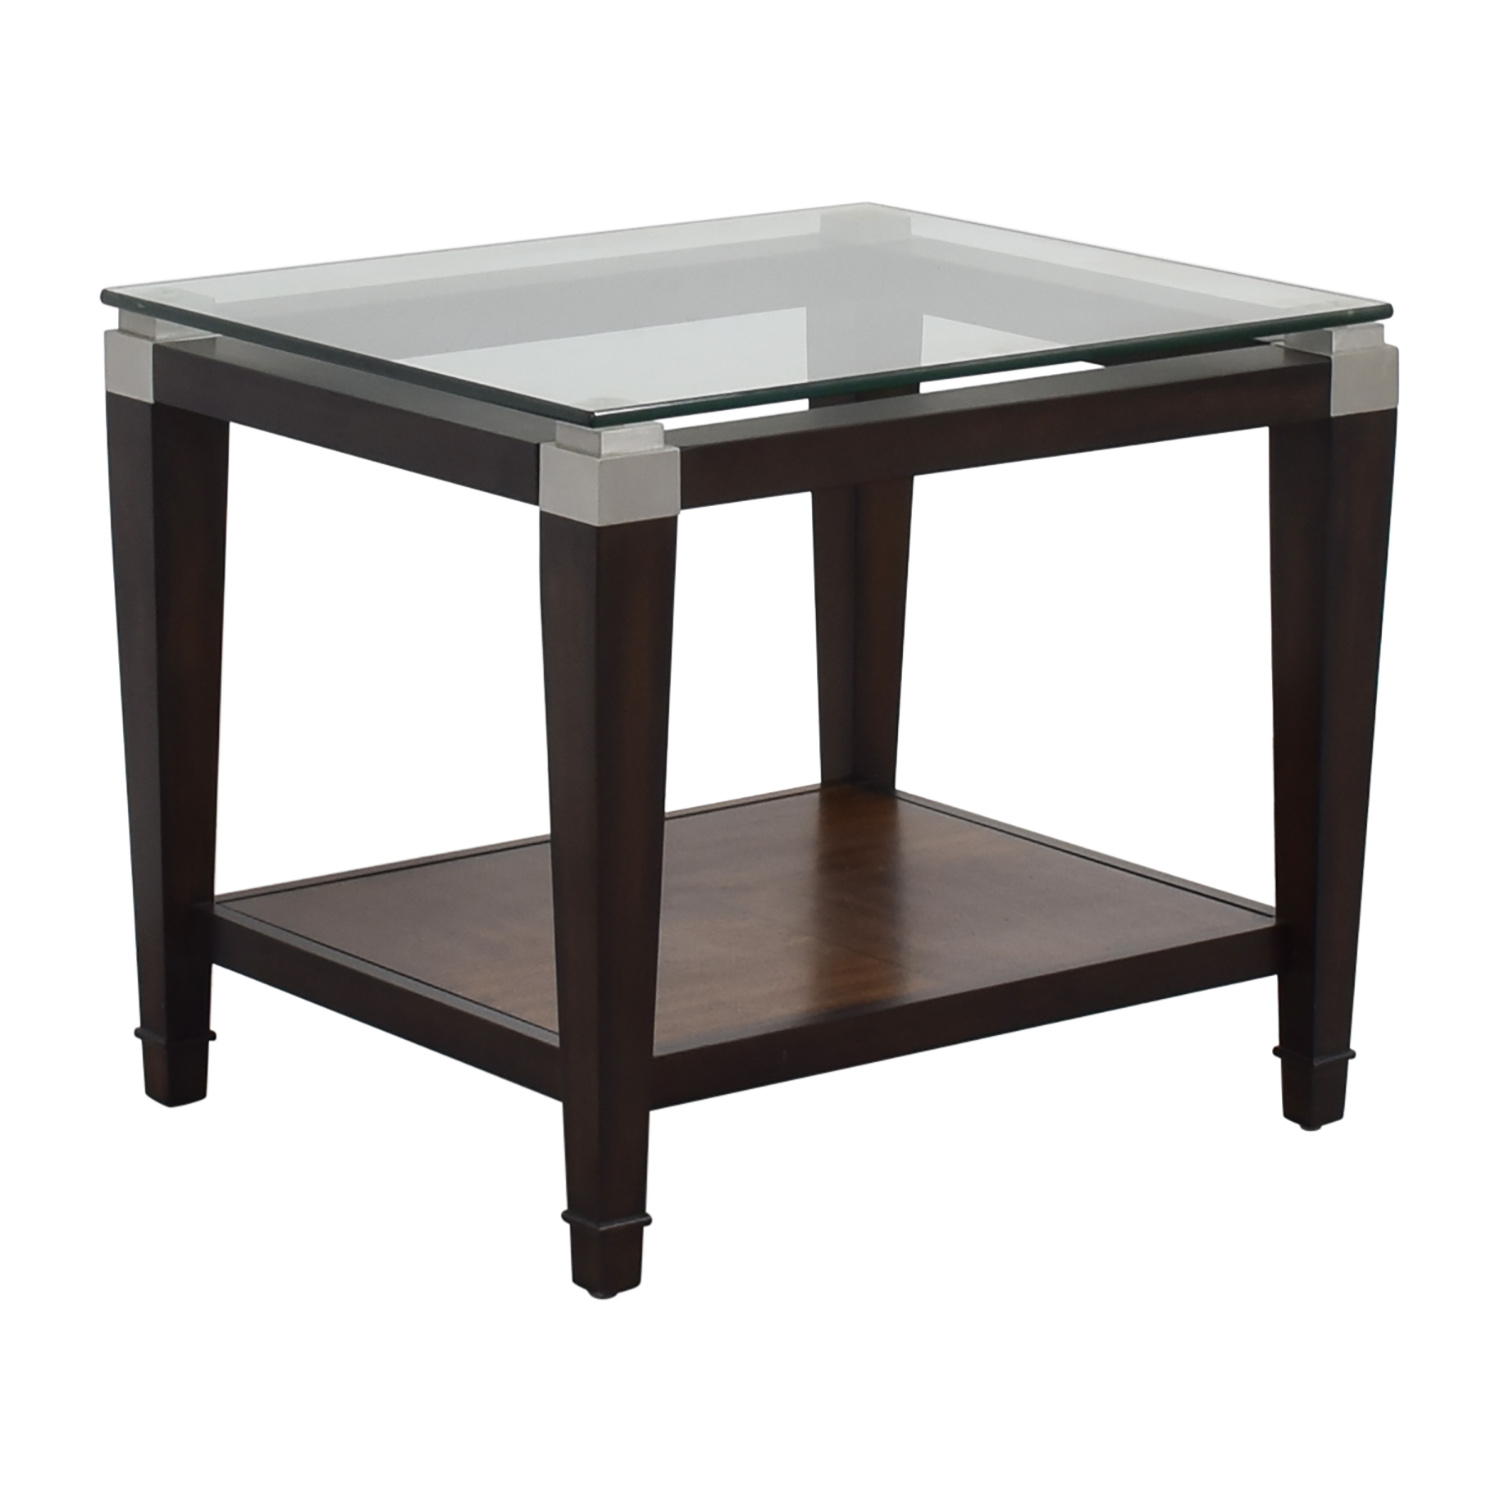 Raymour and Flanigan Raymour & Flanigan Wood and Glass Lamp Table discount